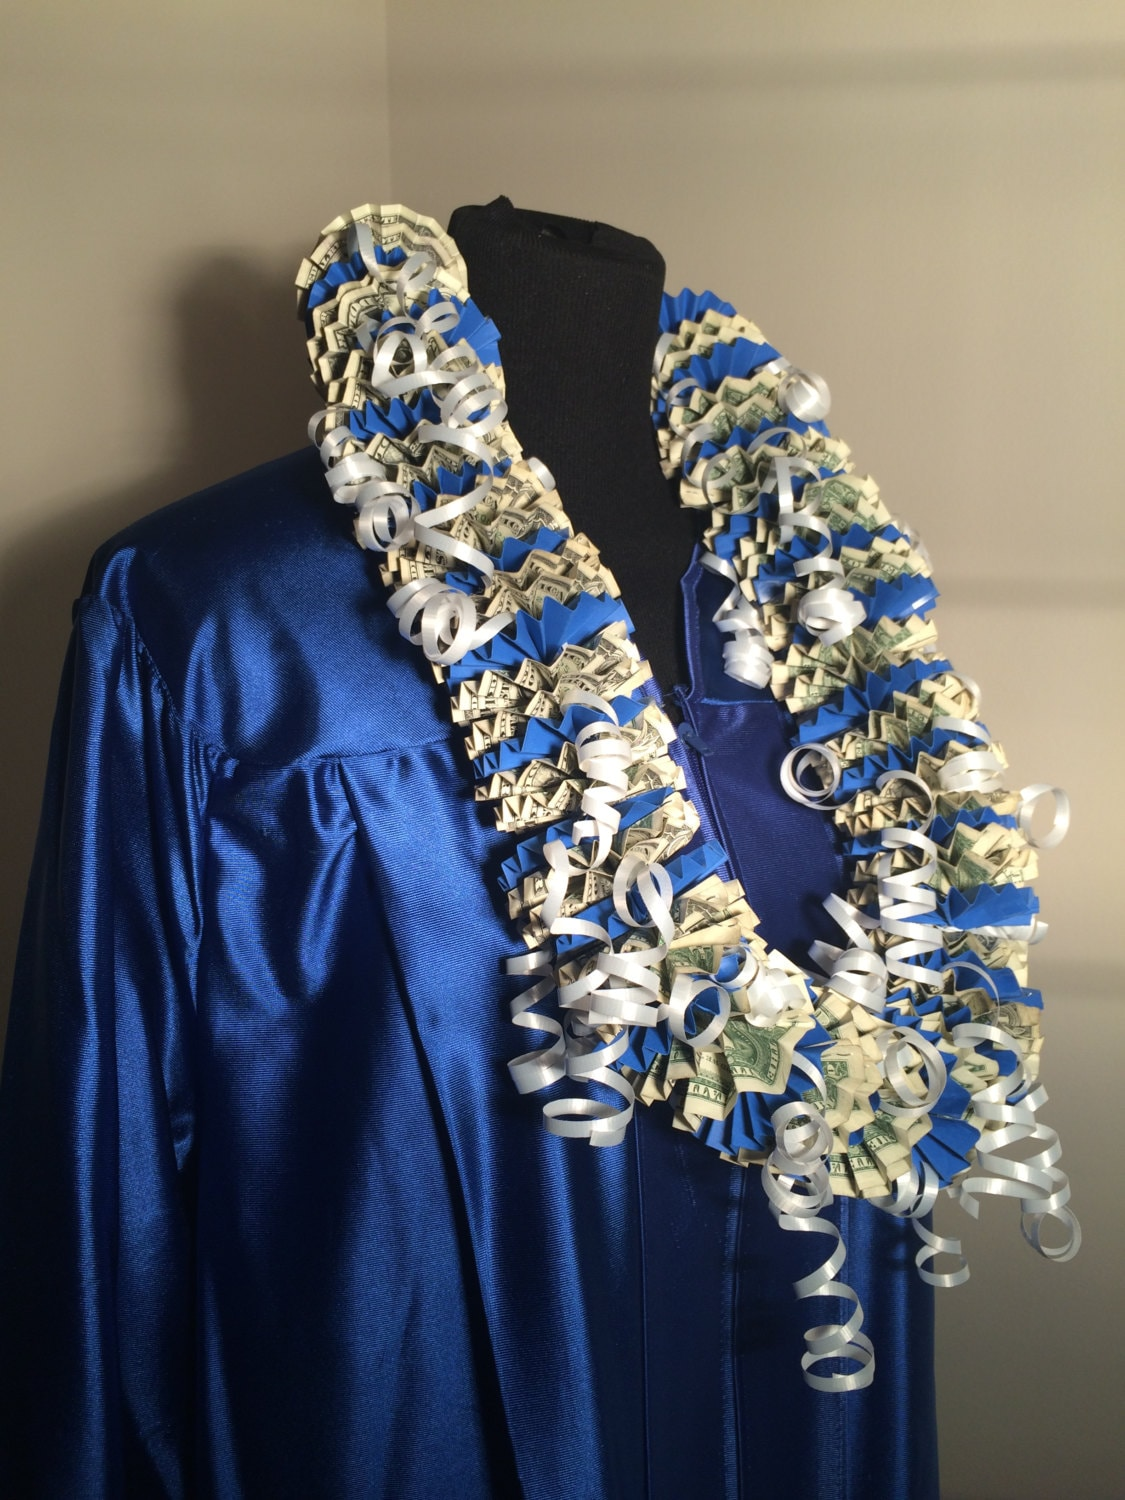 Lei Can Be Made With Construction Paper Yarn Solid: 50 Dollar Money Lei Graduation Lei Cash Lei Dollar Bill